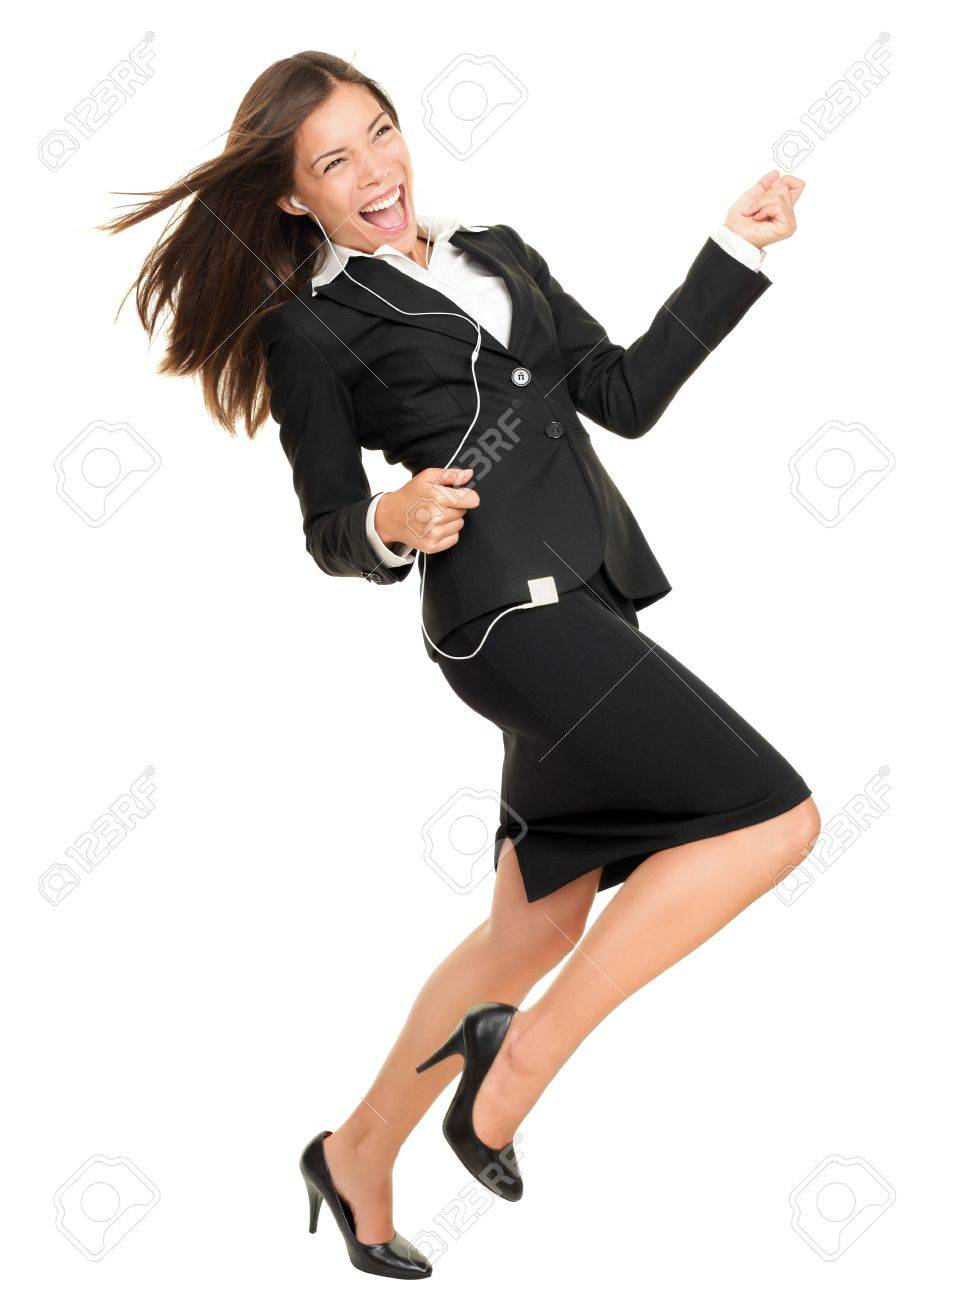 Woman listening to music on mp3 player, dancing playing air guitar. Funny happy portrait of business woman isolated on white background in full length. Stock Photo - 10437891